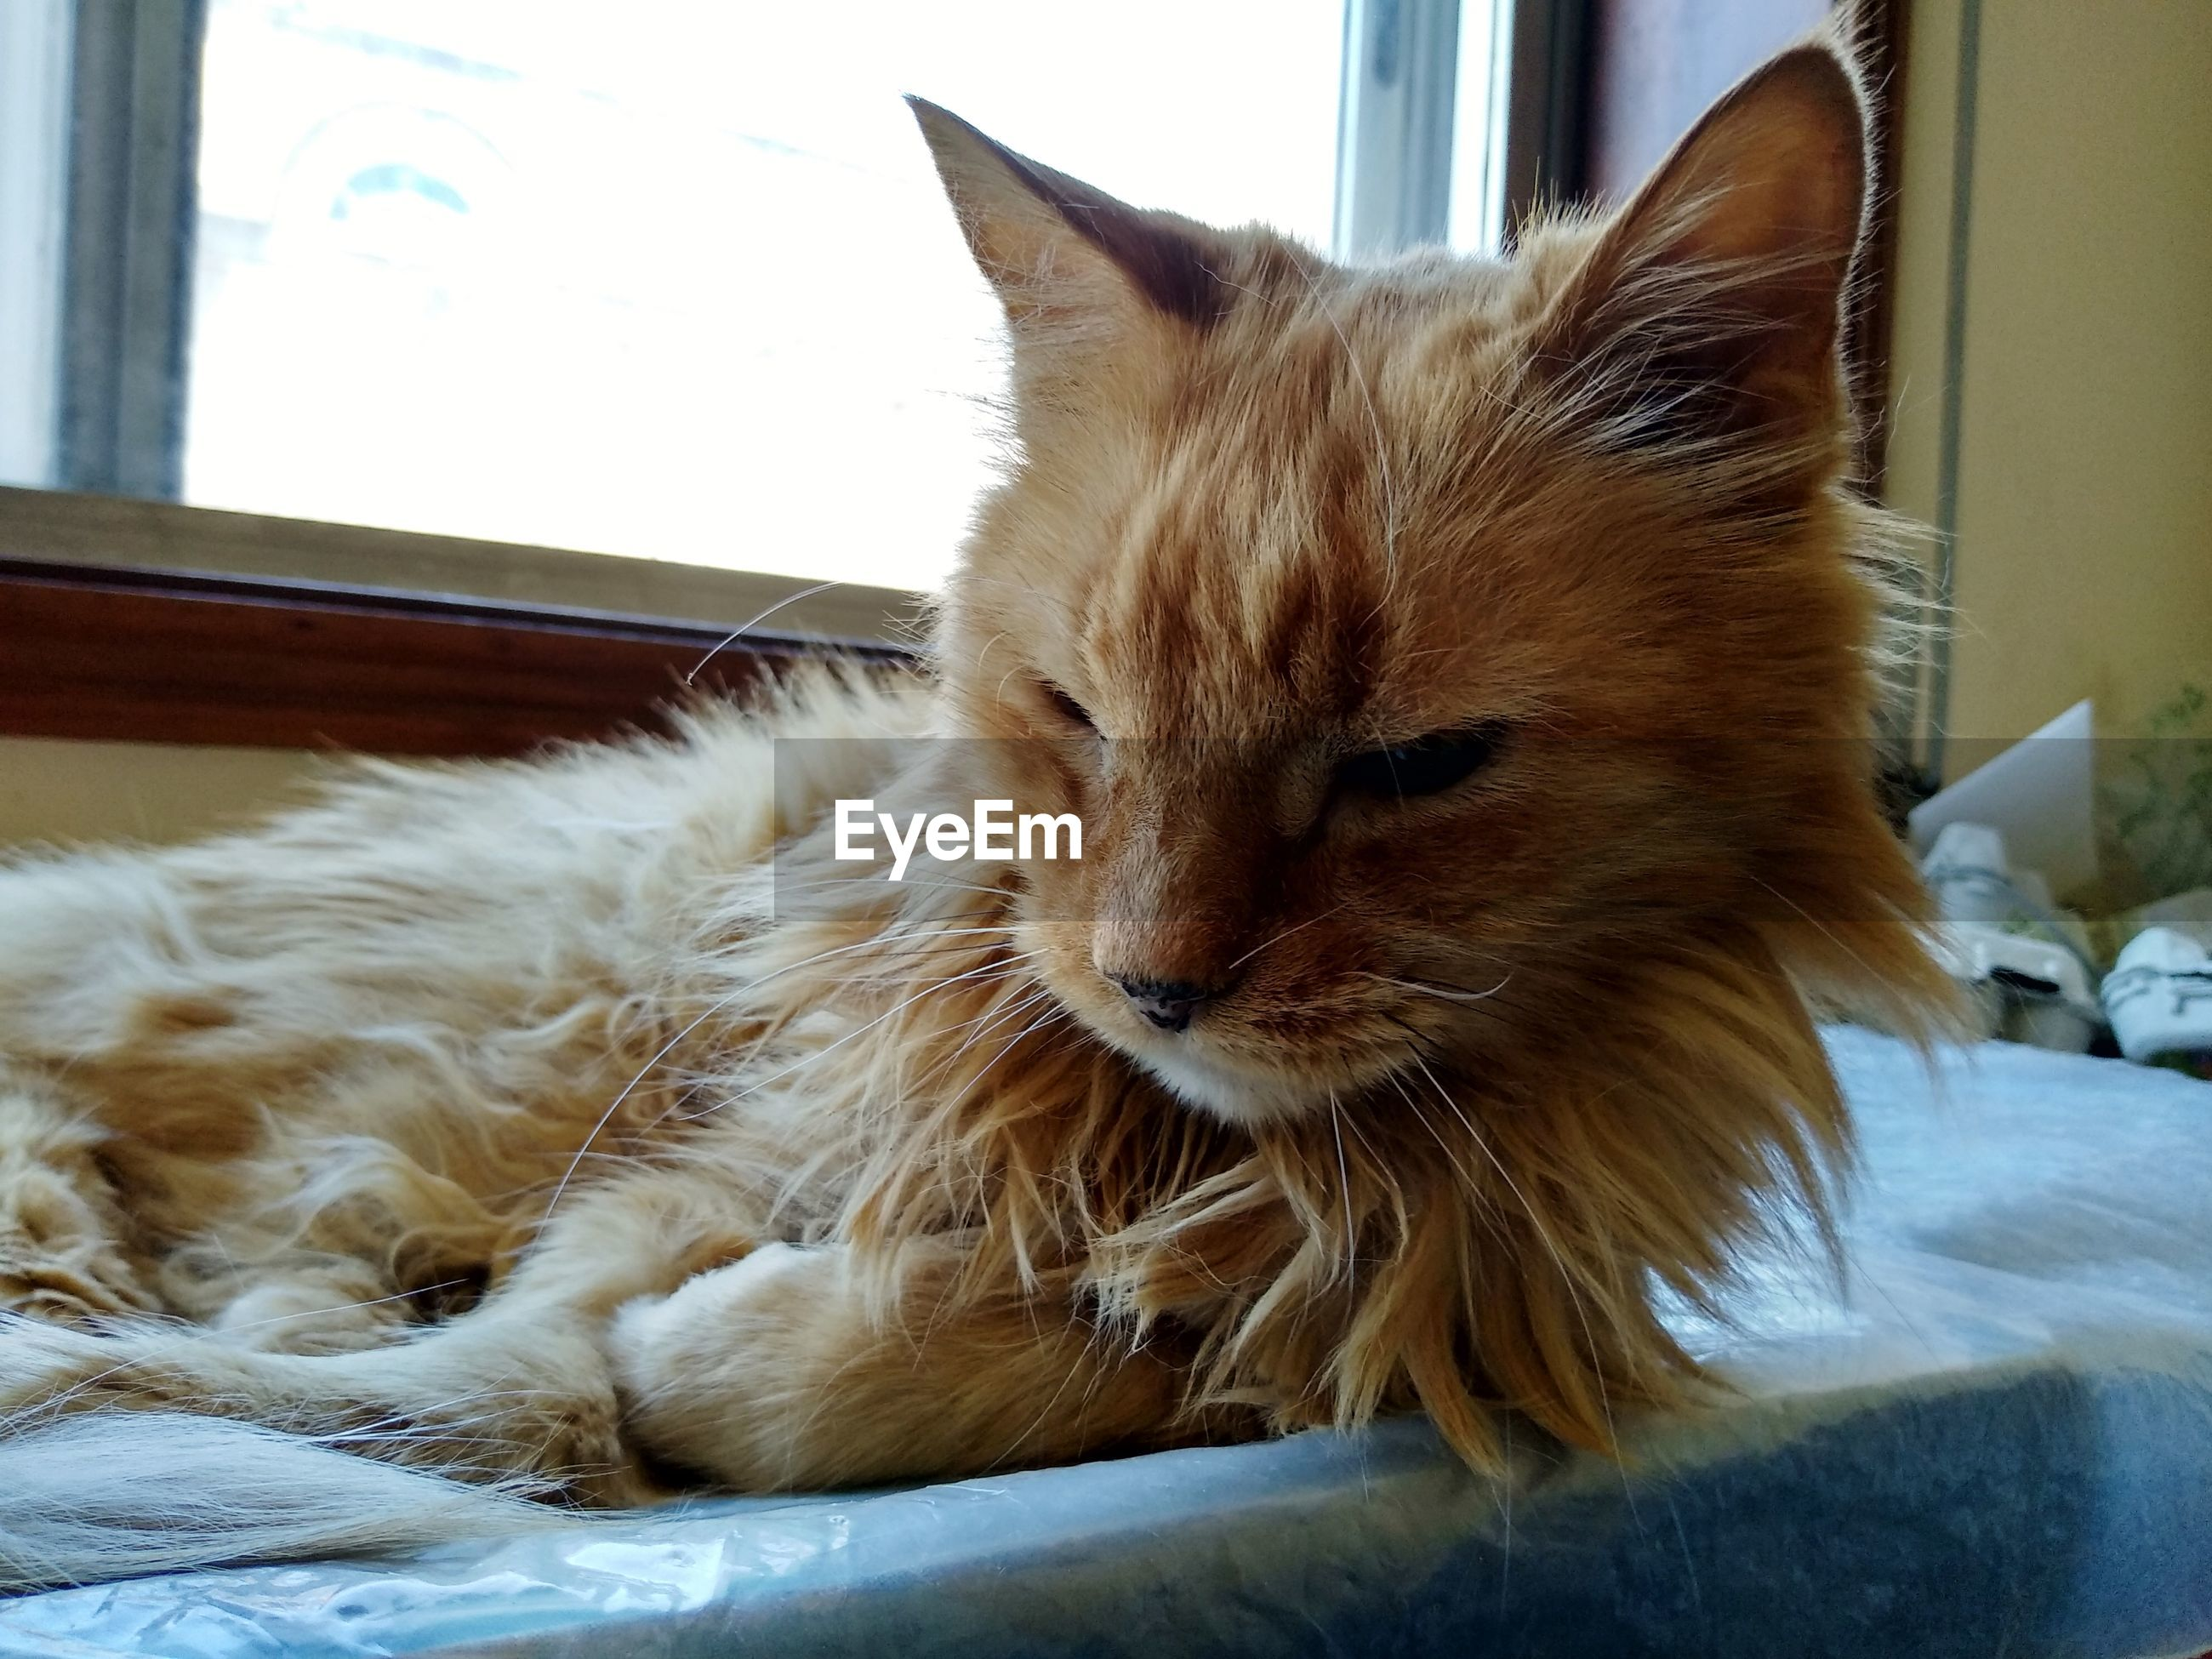 domestic, mammal, pets, domestic animals, animal themes, vertebrate, animal, one animal, cat, domestic cat, feline, relaxation, furniture, indoors, no people, home interior, bed, resting, close-up, whisker, ginger cat